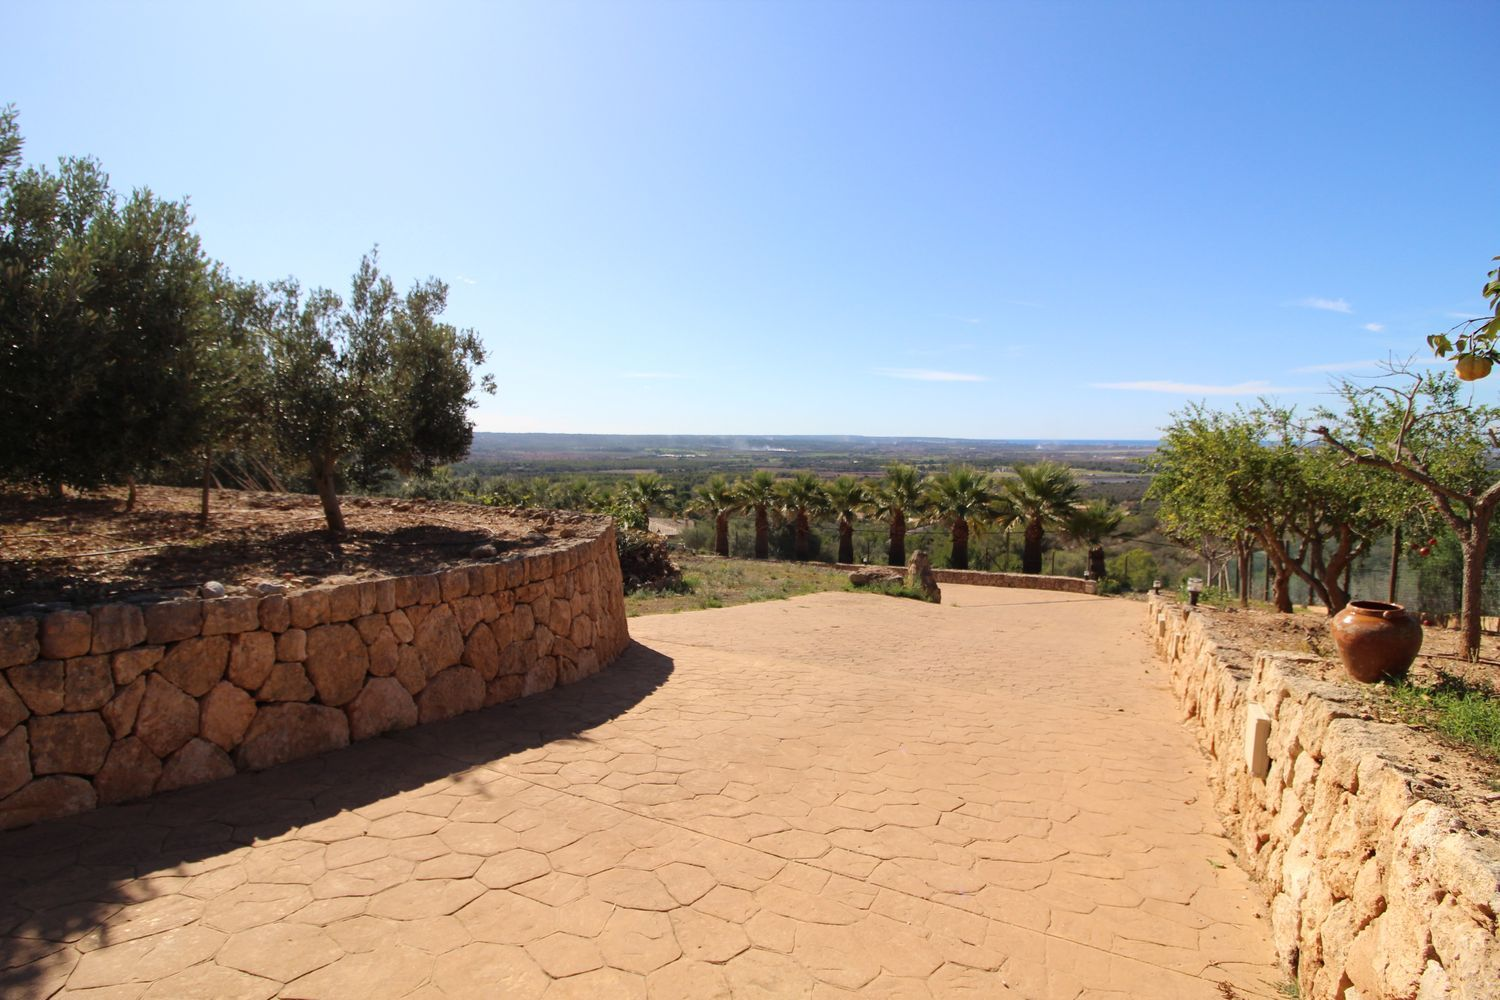 Puntiro Mallorca - quality villa in exclusive urbanization area with amazing panoramic views